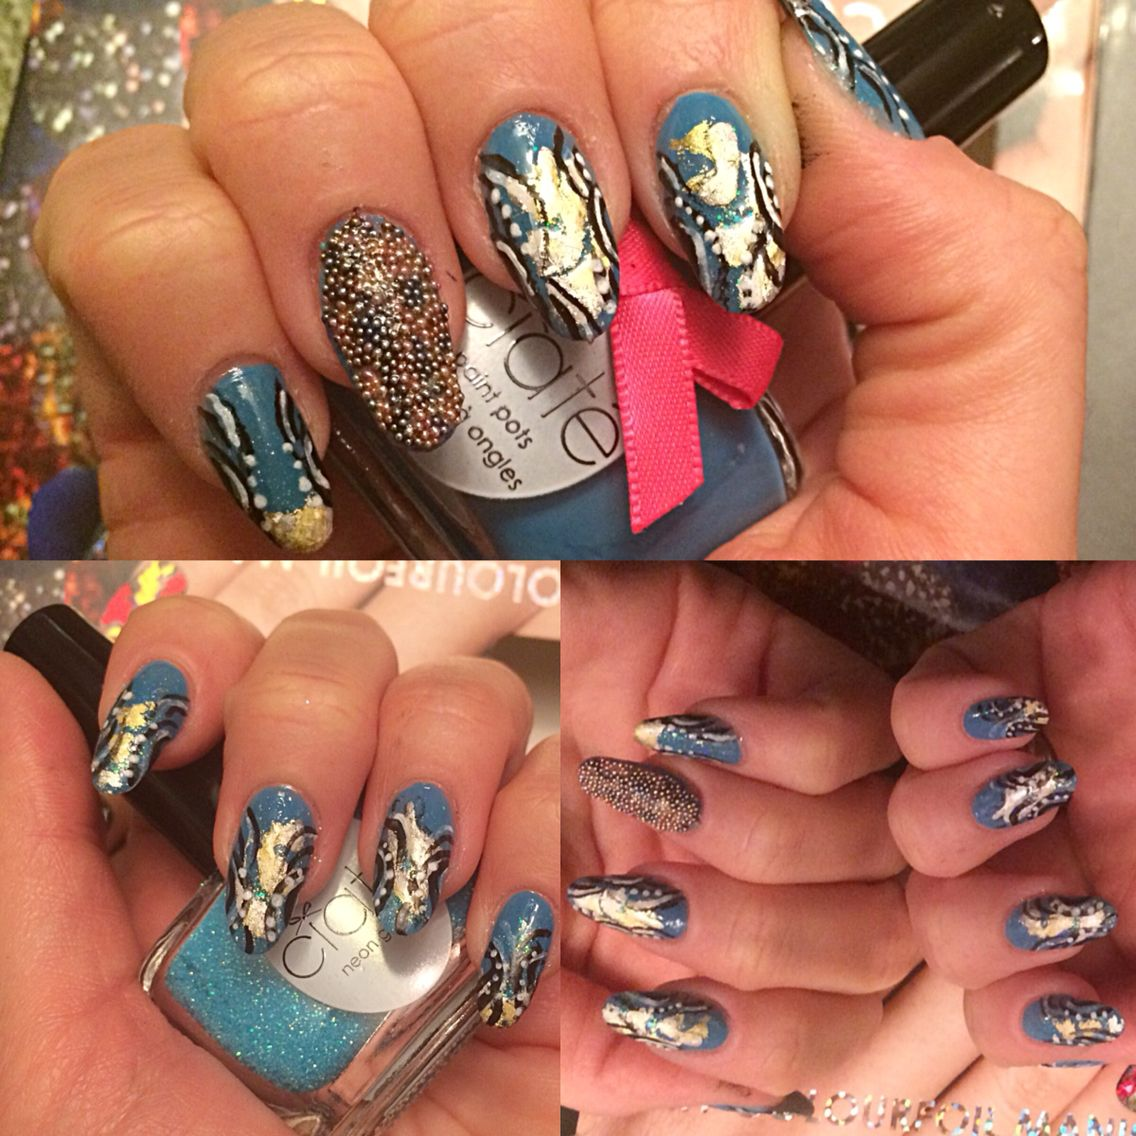 My new nail products;) gifts:) loved working with them (foil, neon ...